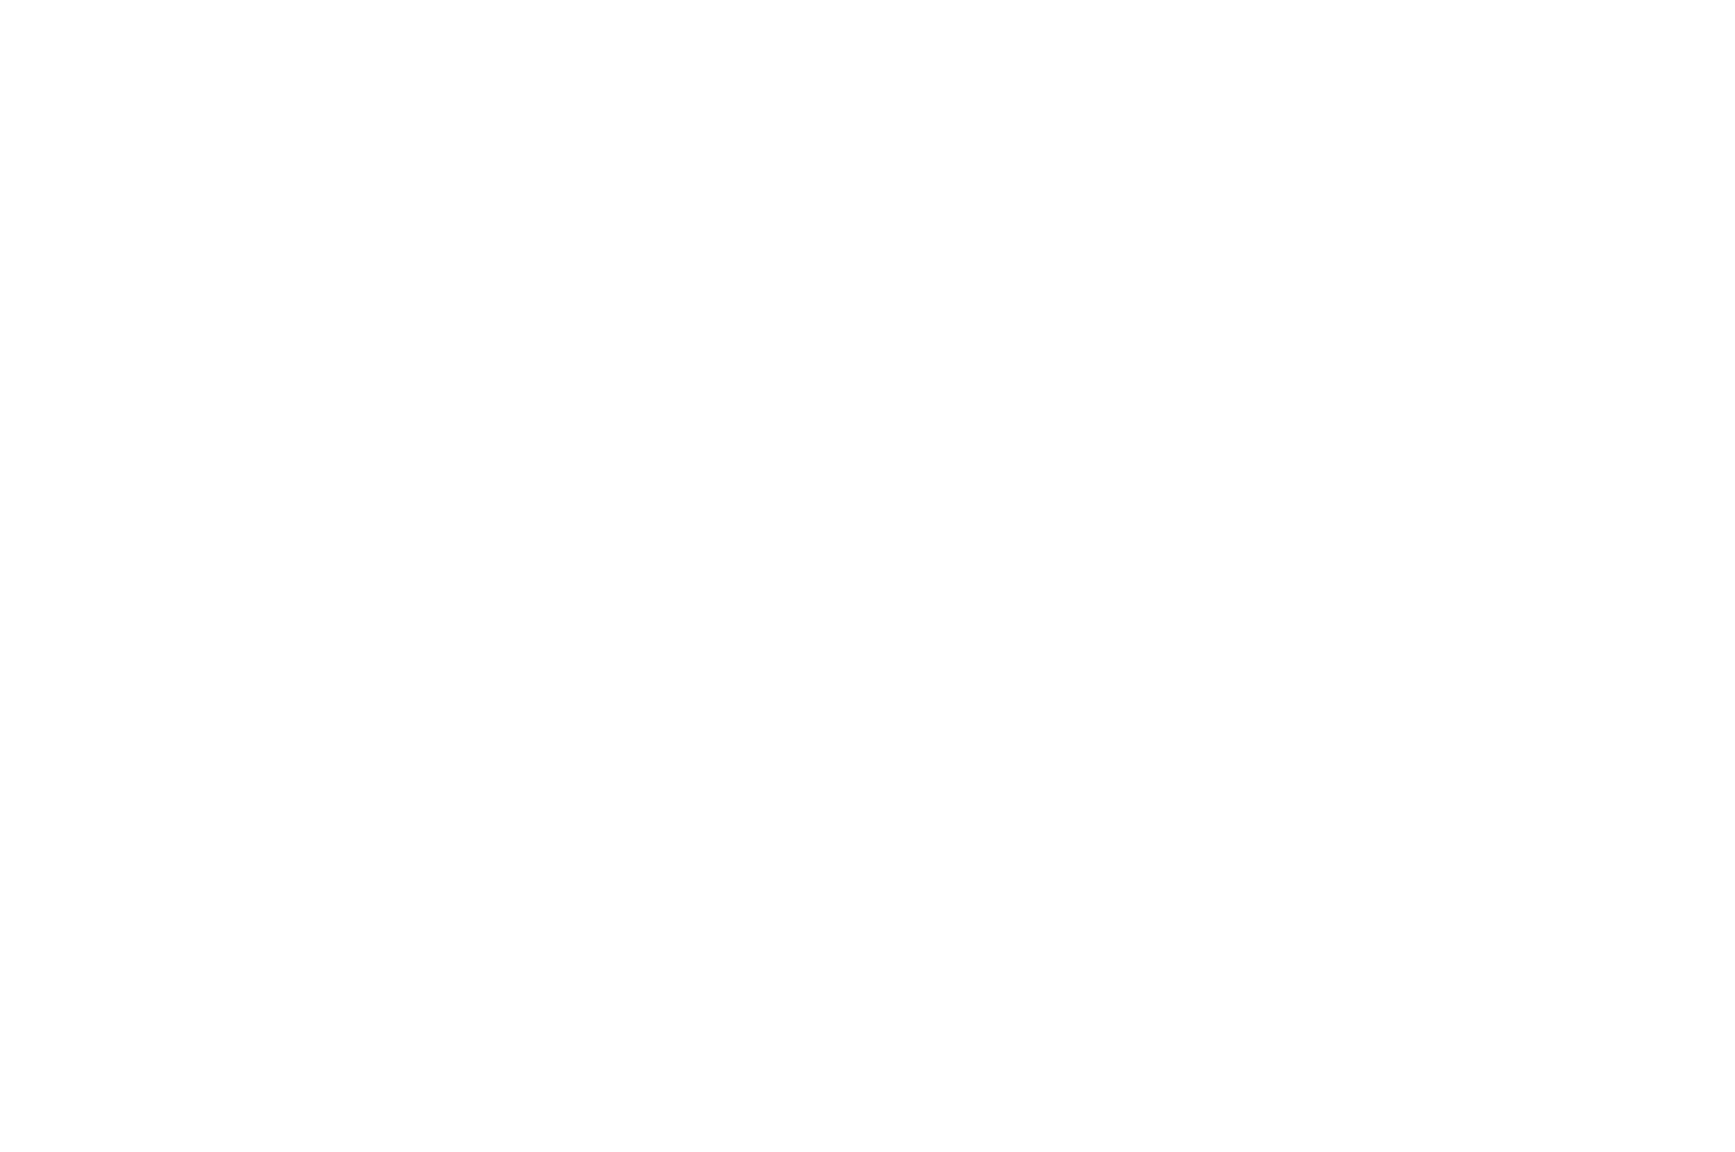 Winner of the - US Songwriting Award - 2019.png